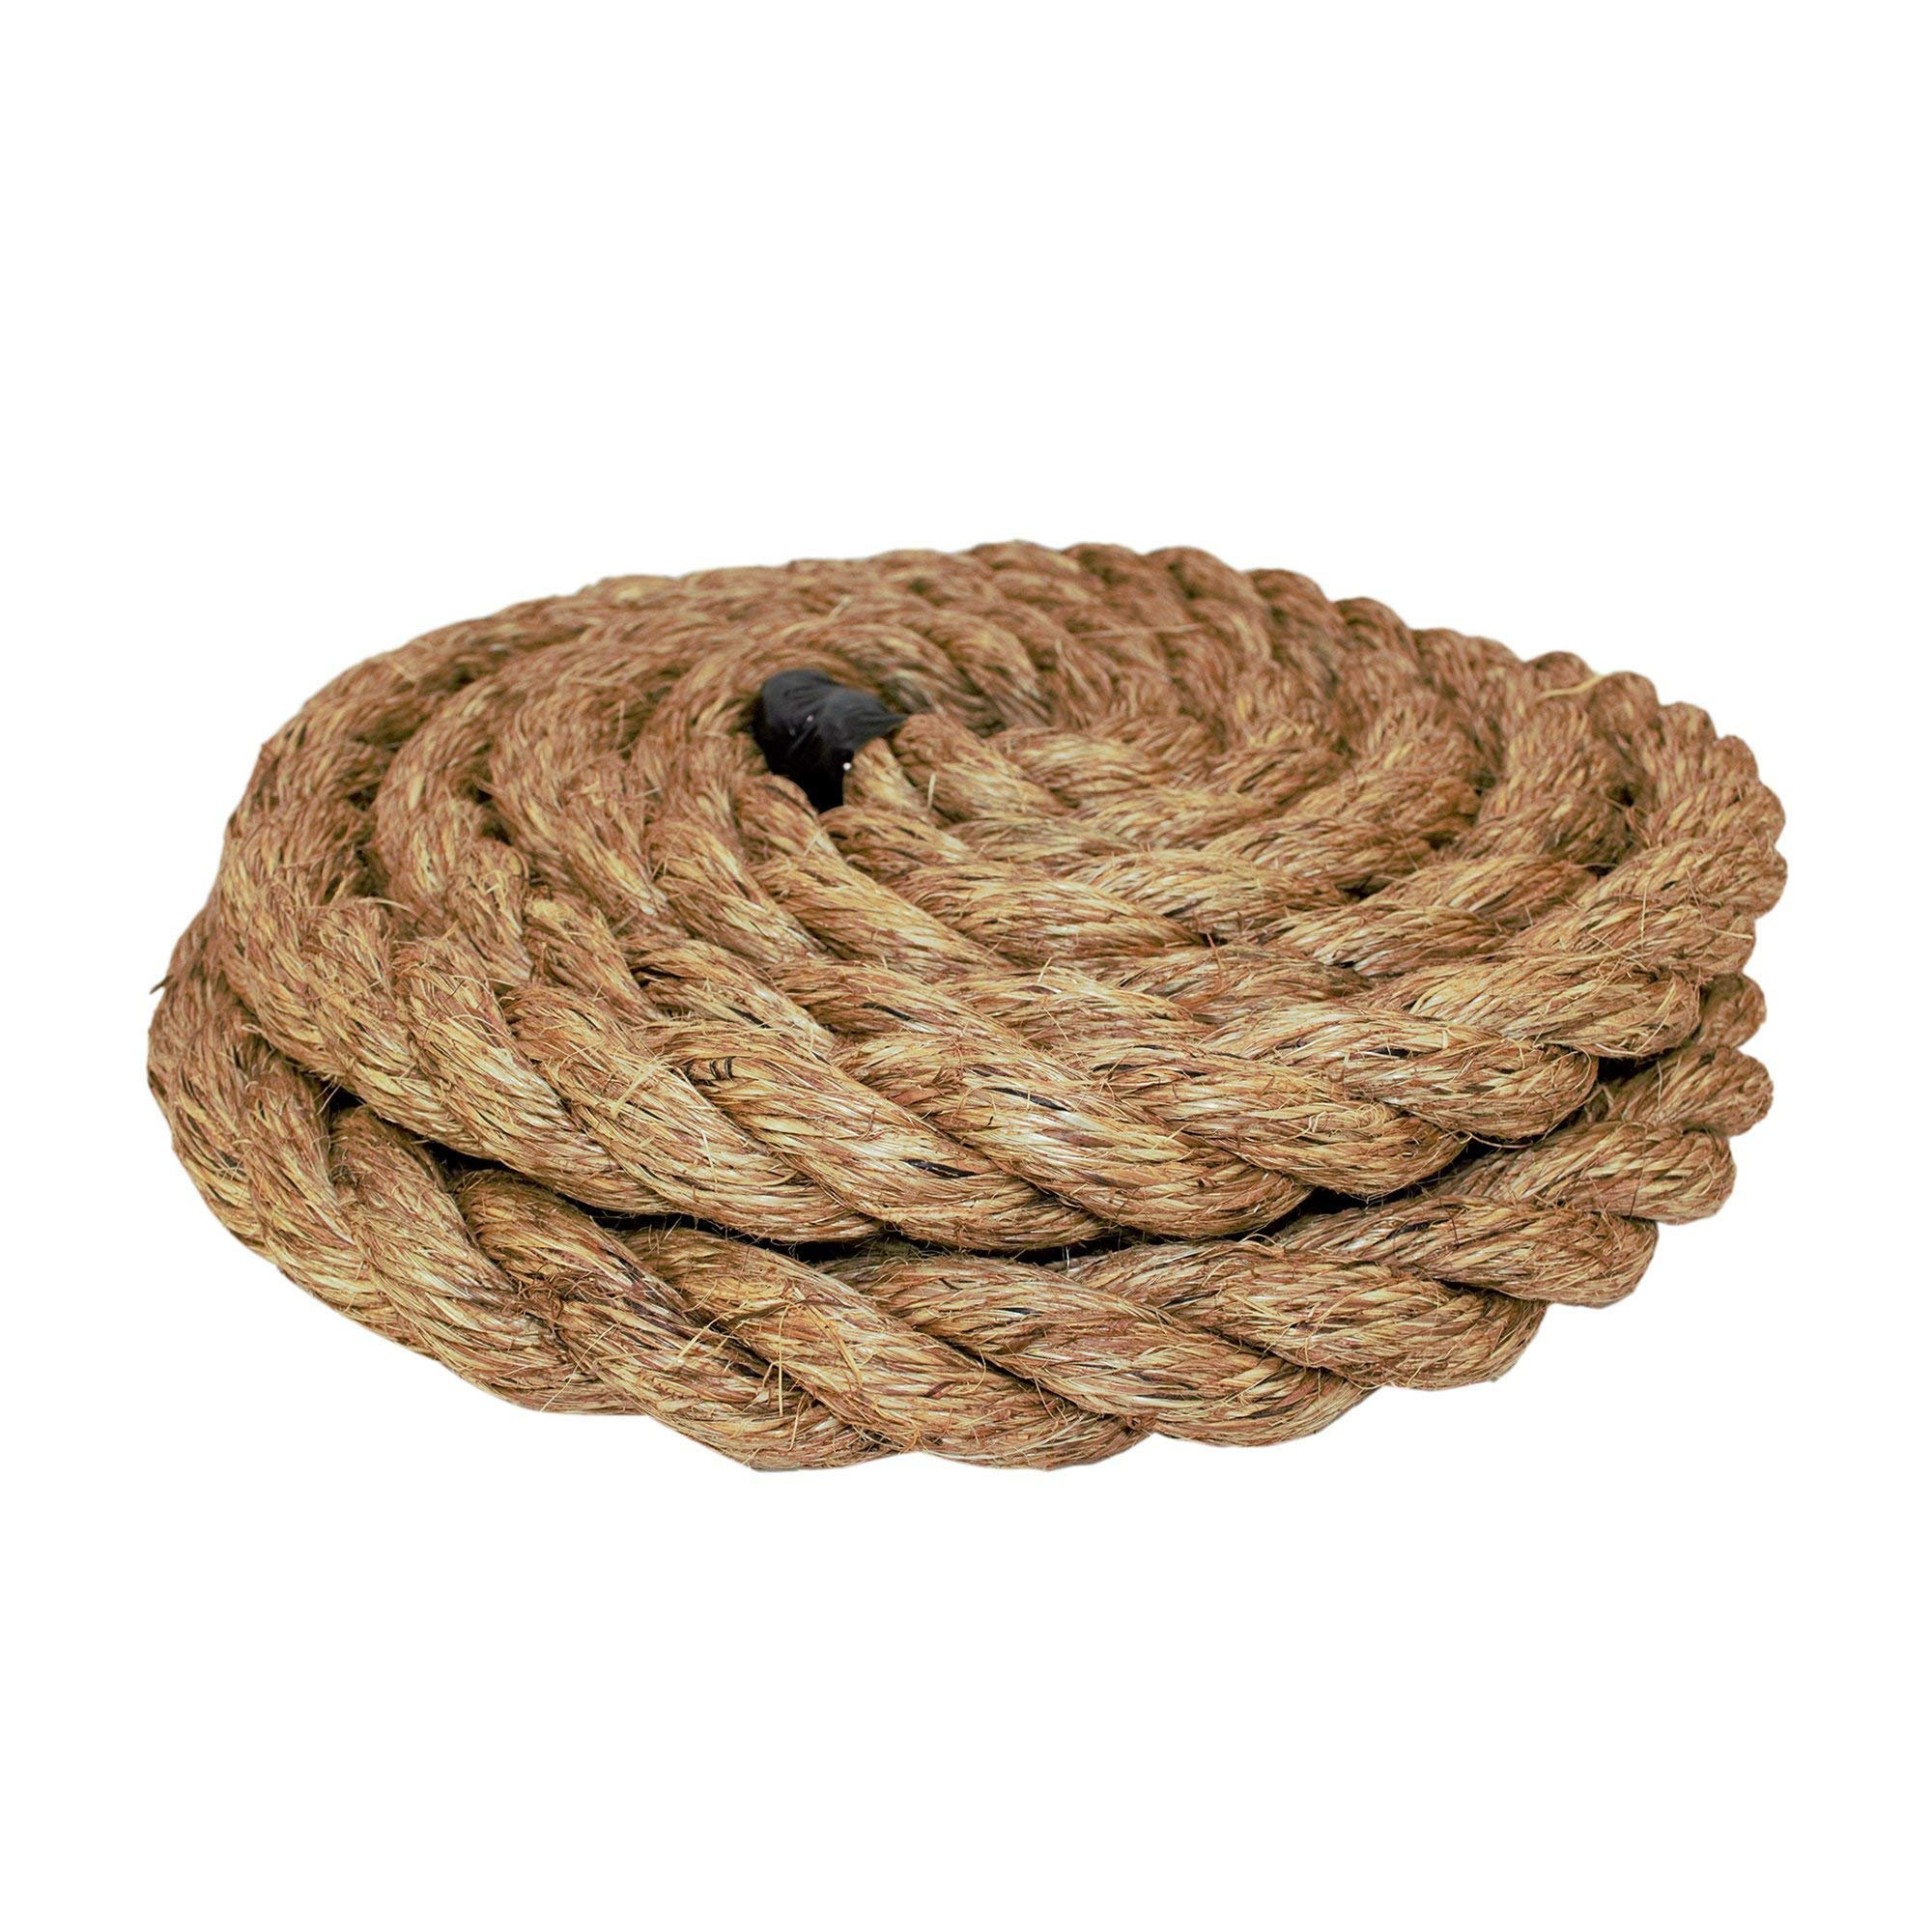 Thick Heavy Duty Rustic Outdoor Cordage for Craft Dock Climbing 1//4 in x 10 ft Tree Hanging Swing - SGT KNOTS Twisted Manila Rope Hemp Rope Tan Brown Natural Rope Decorative Landscaping